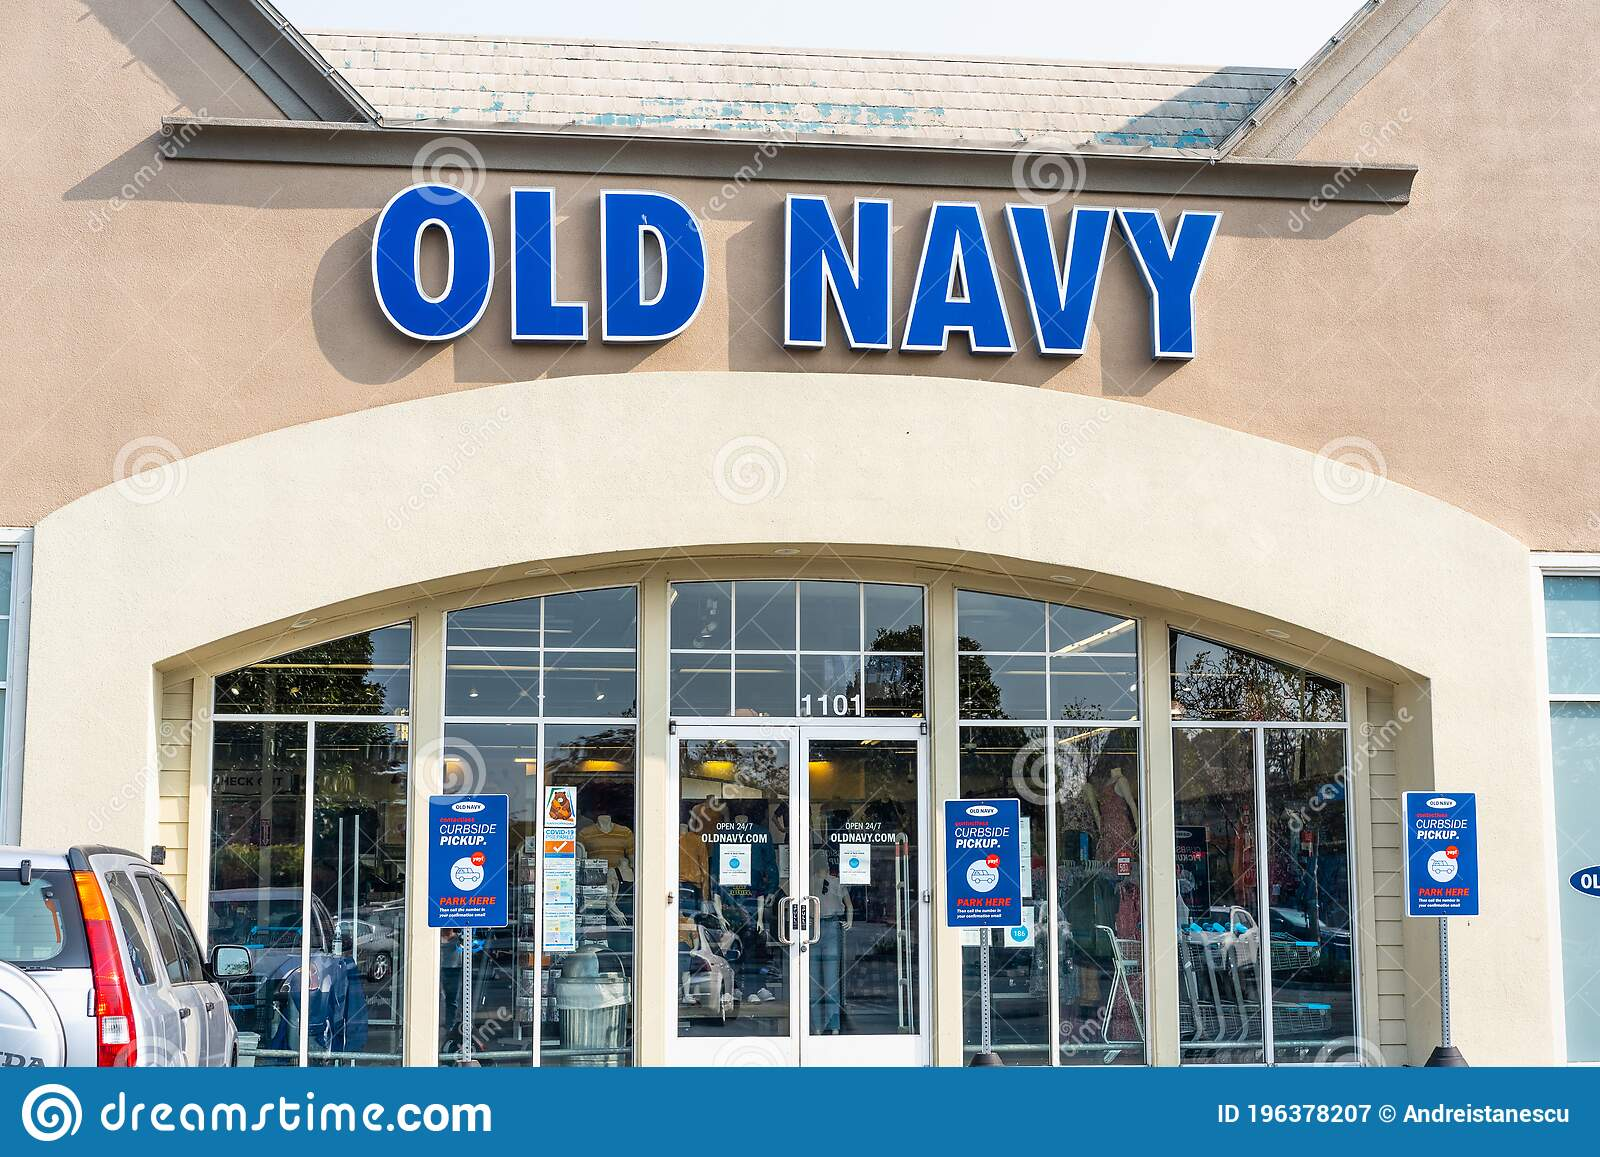 874 Old Navy Store Photos Free Royalty Free Stock Photos From Dreamstime